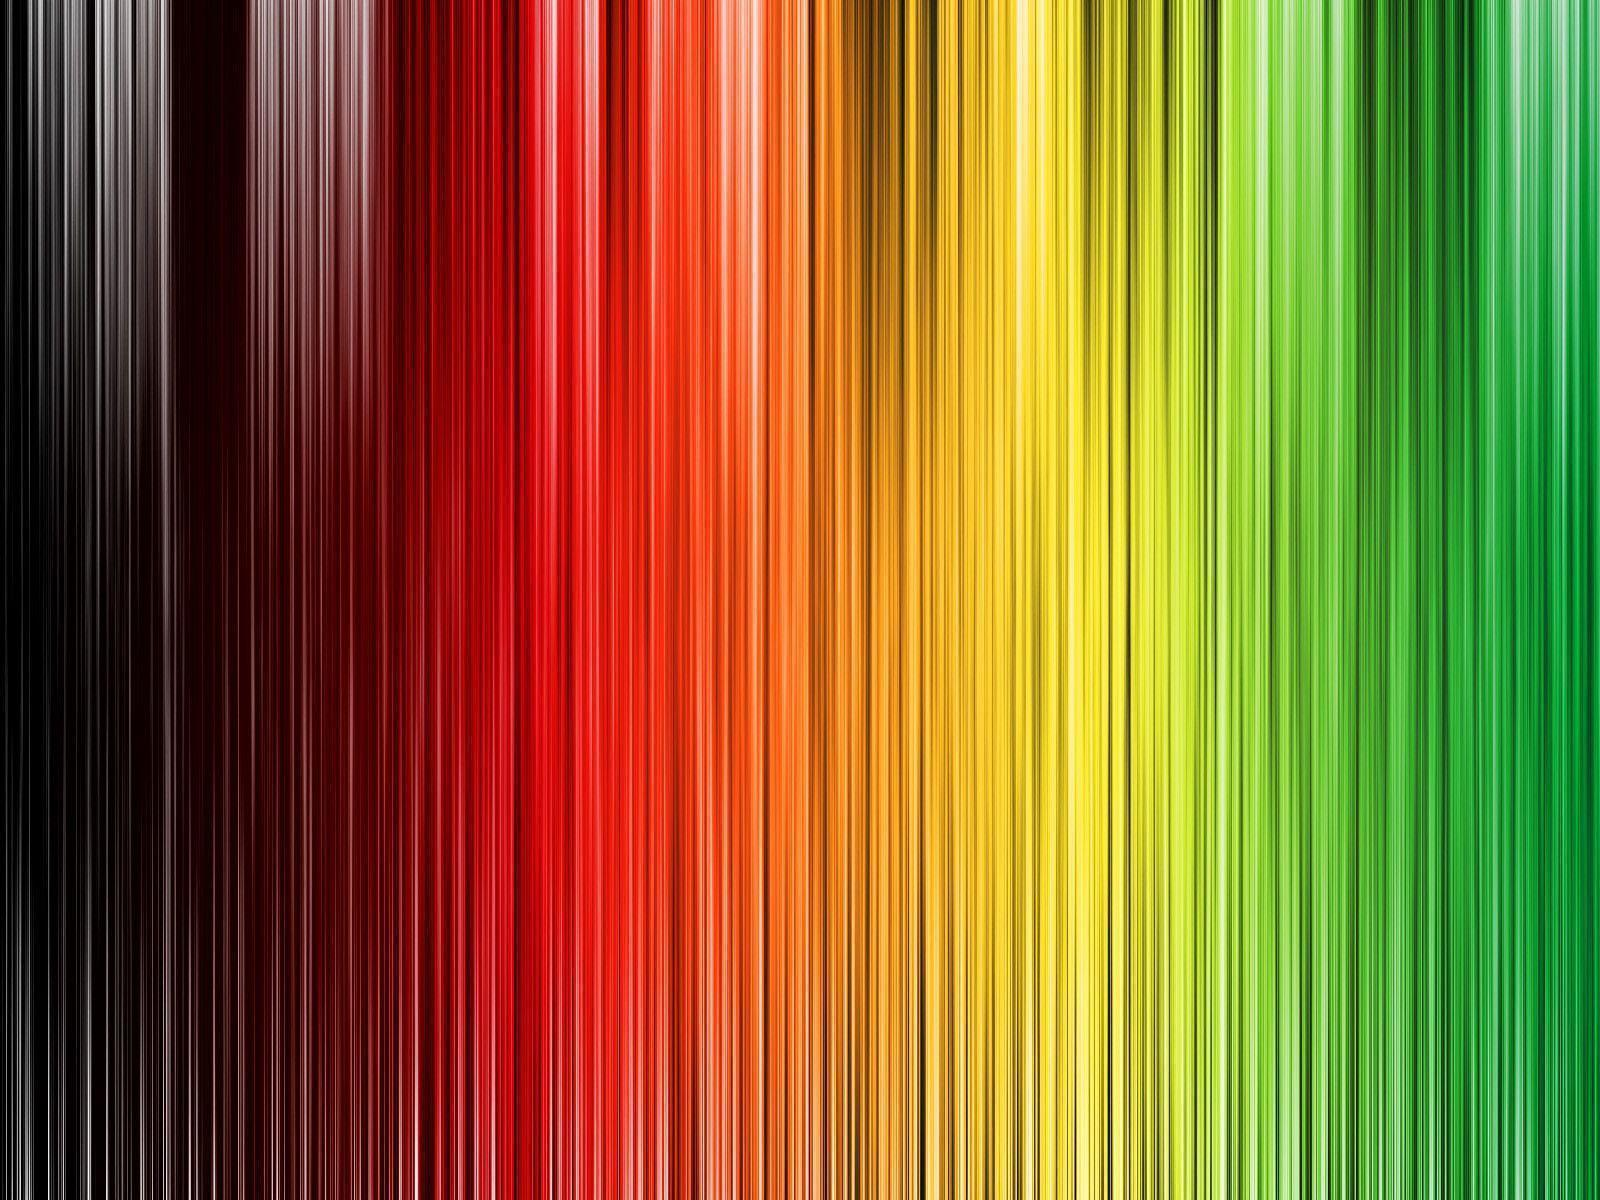 rasta colors backgrounds hd - photo #25